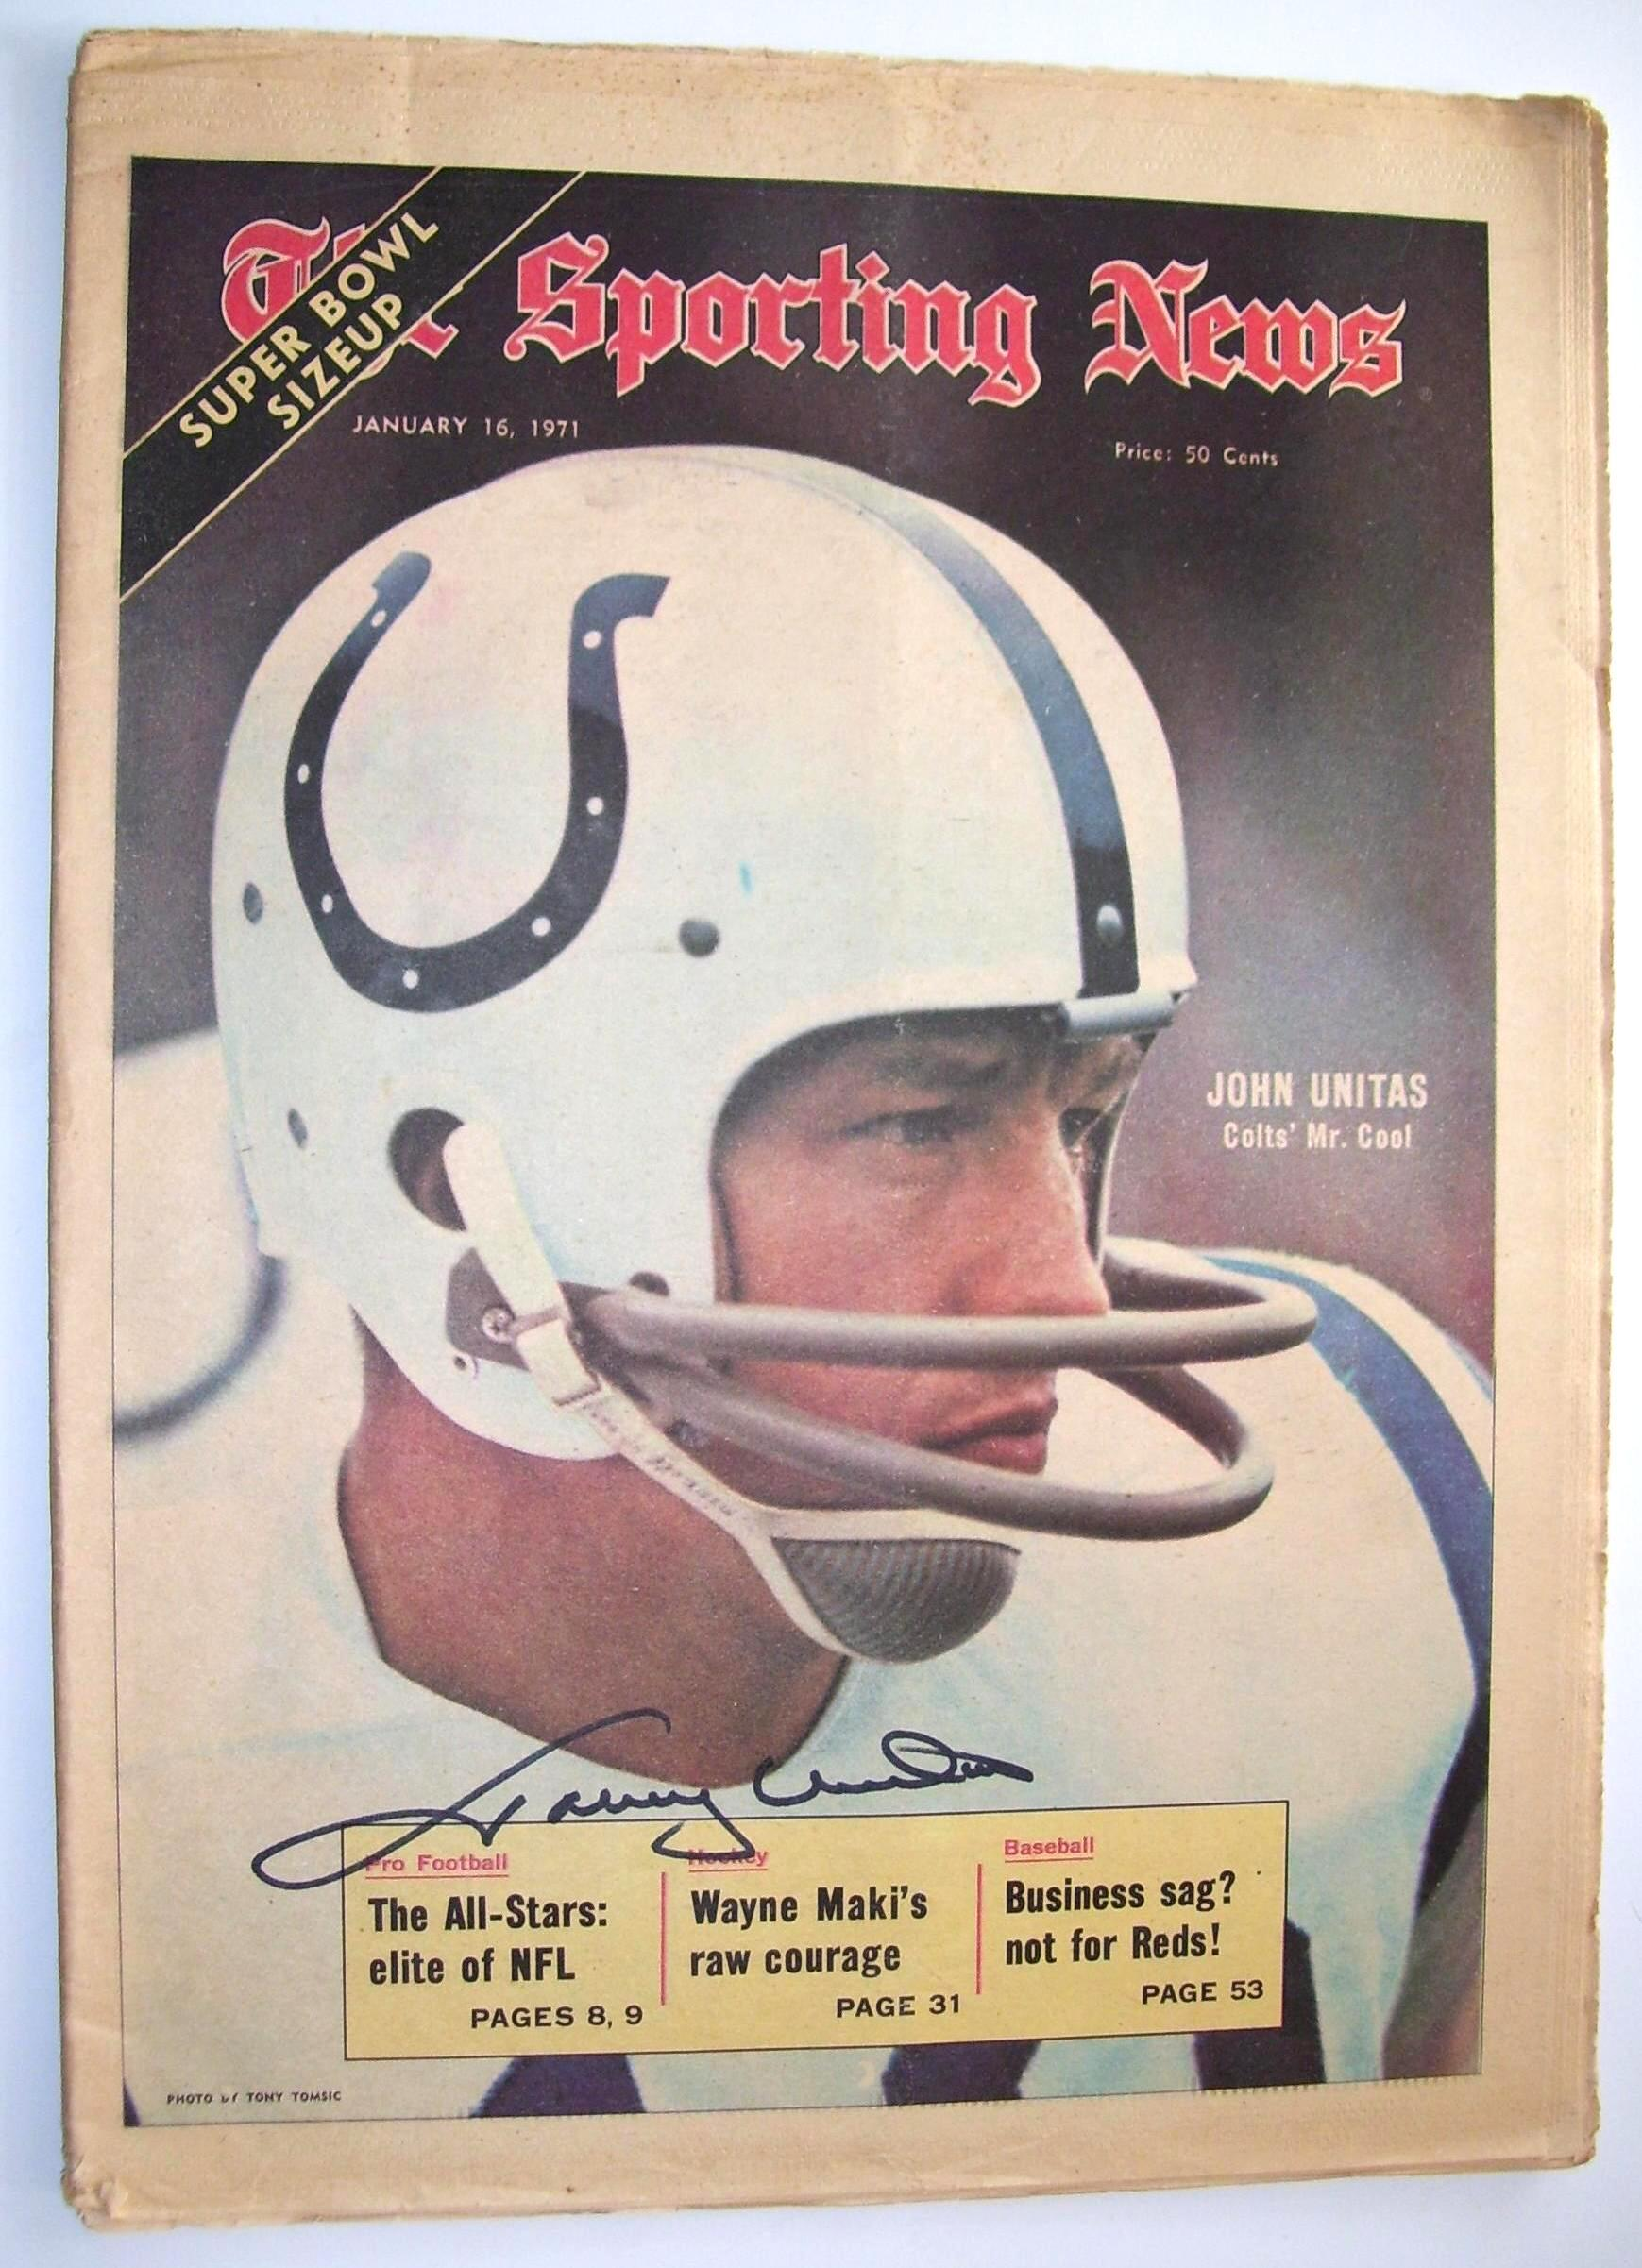 Johnny Unitas - AUTOGRAPHED SPORTING NEWS (1-16-71) (Colts) Baseball cards value